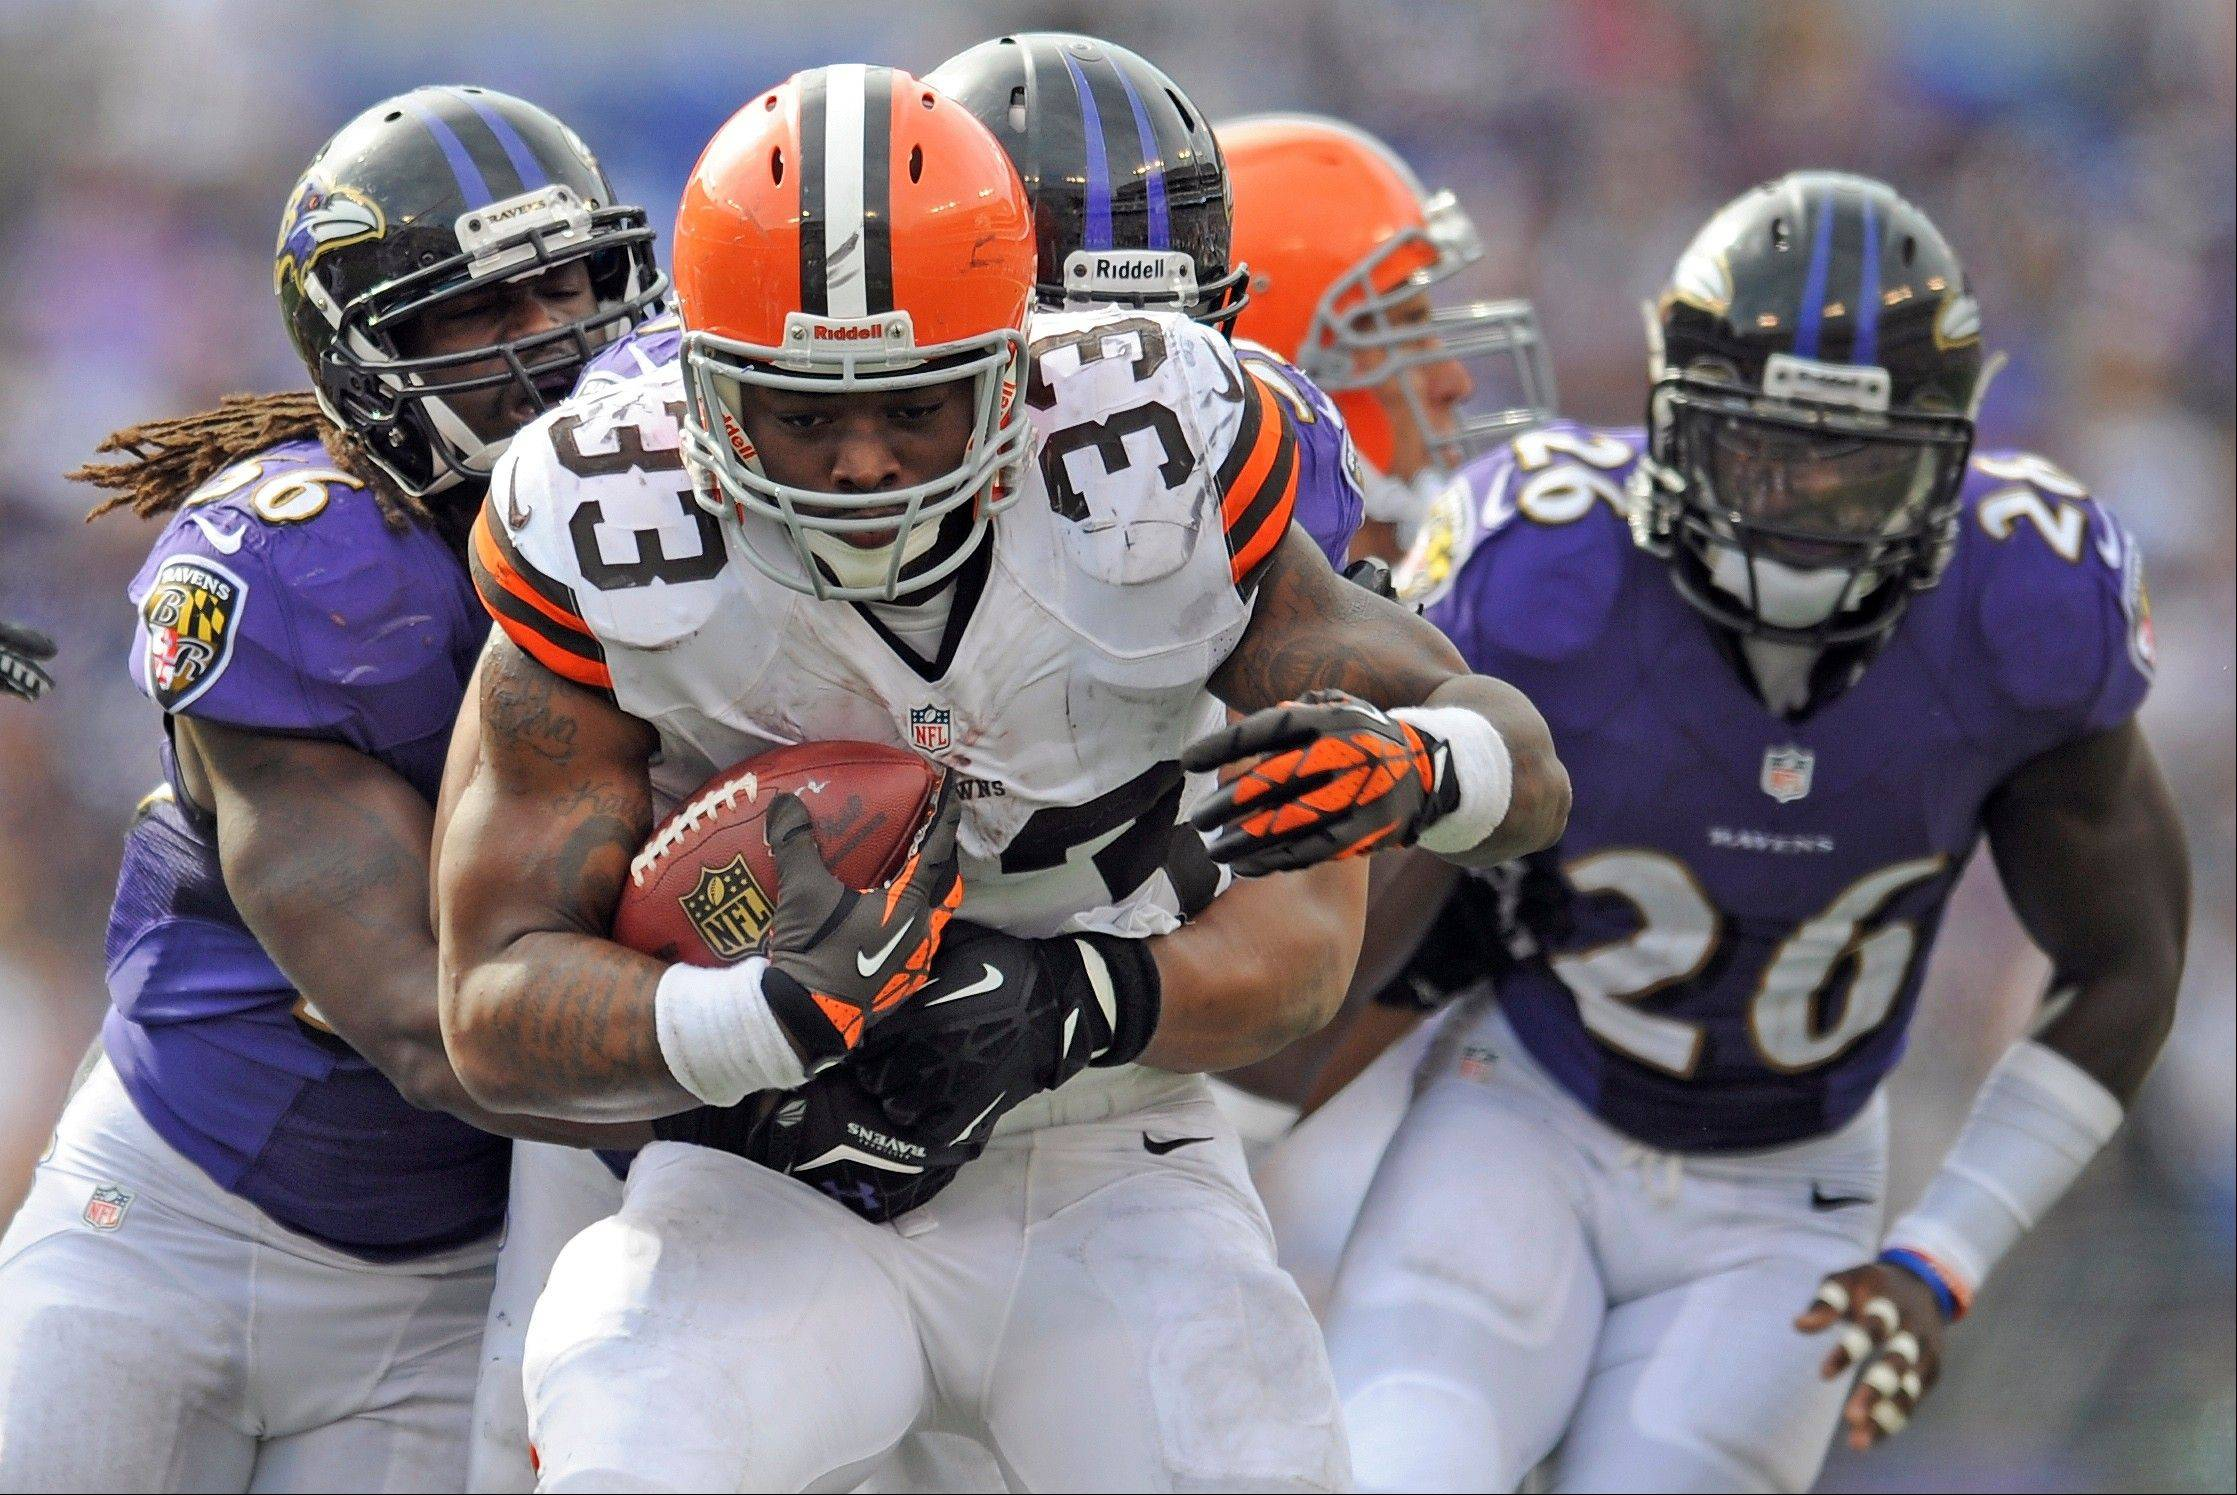 Cleveland Browns running back Trent Richardson carries the ball during an NFL football game against the Baltimore Ravens in Baltimore. The Browns have traded Richardson to the Indianapolis Colts in a surprise move less than two years after drafting him in the first round. The Browns (0-2), struggling on offense under new coach Rob Chudzinski, announced the move Wednesday afternoon, Sept. 18. They will also bring in veteran running back Willis McGahee for a physical.